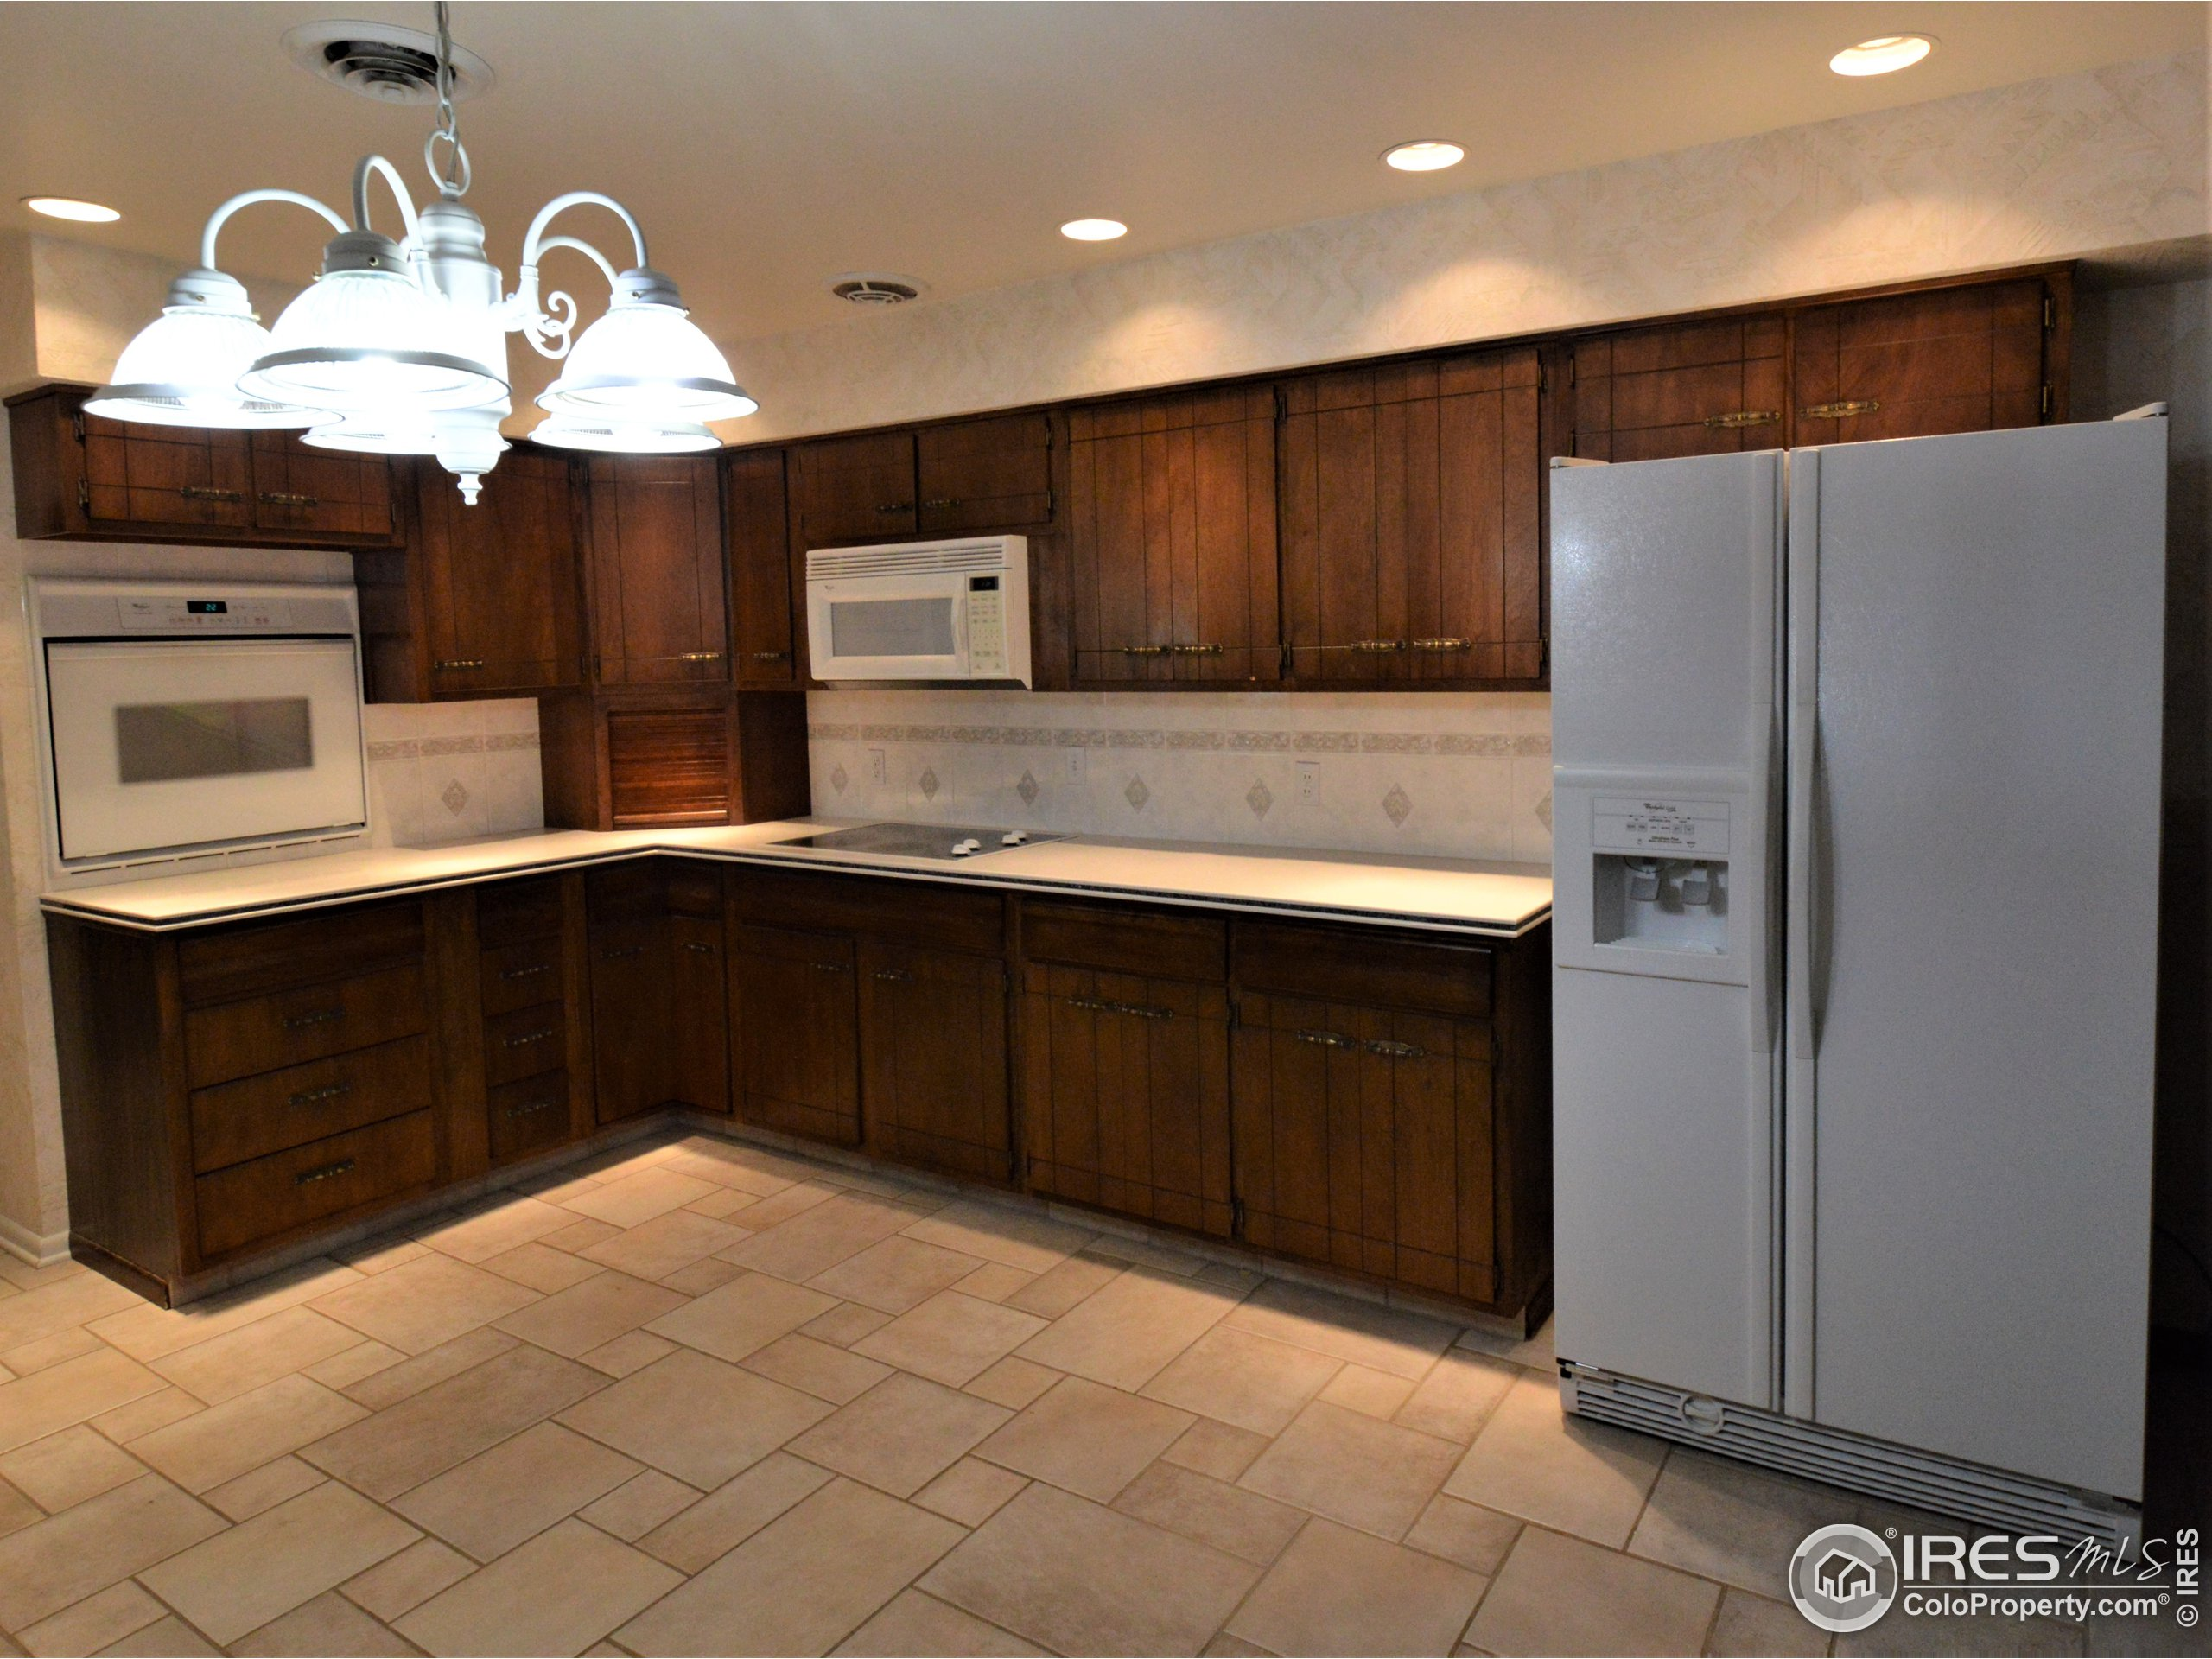 Lots of Counter Tops and Cupboards